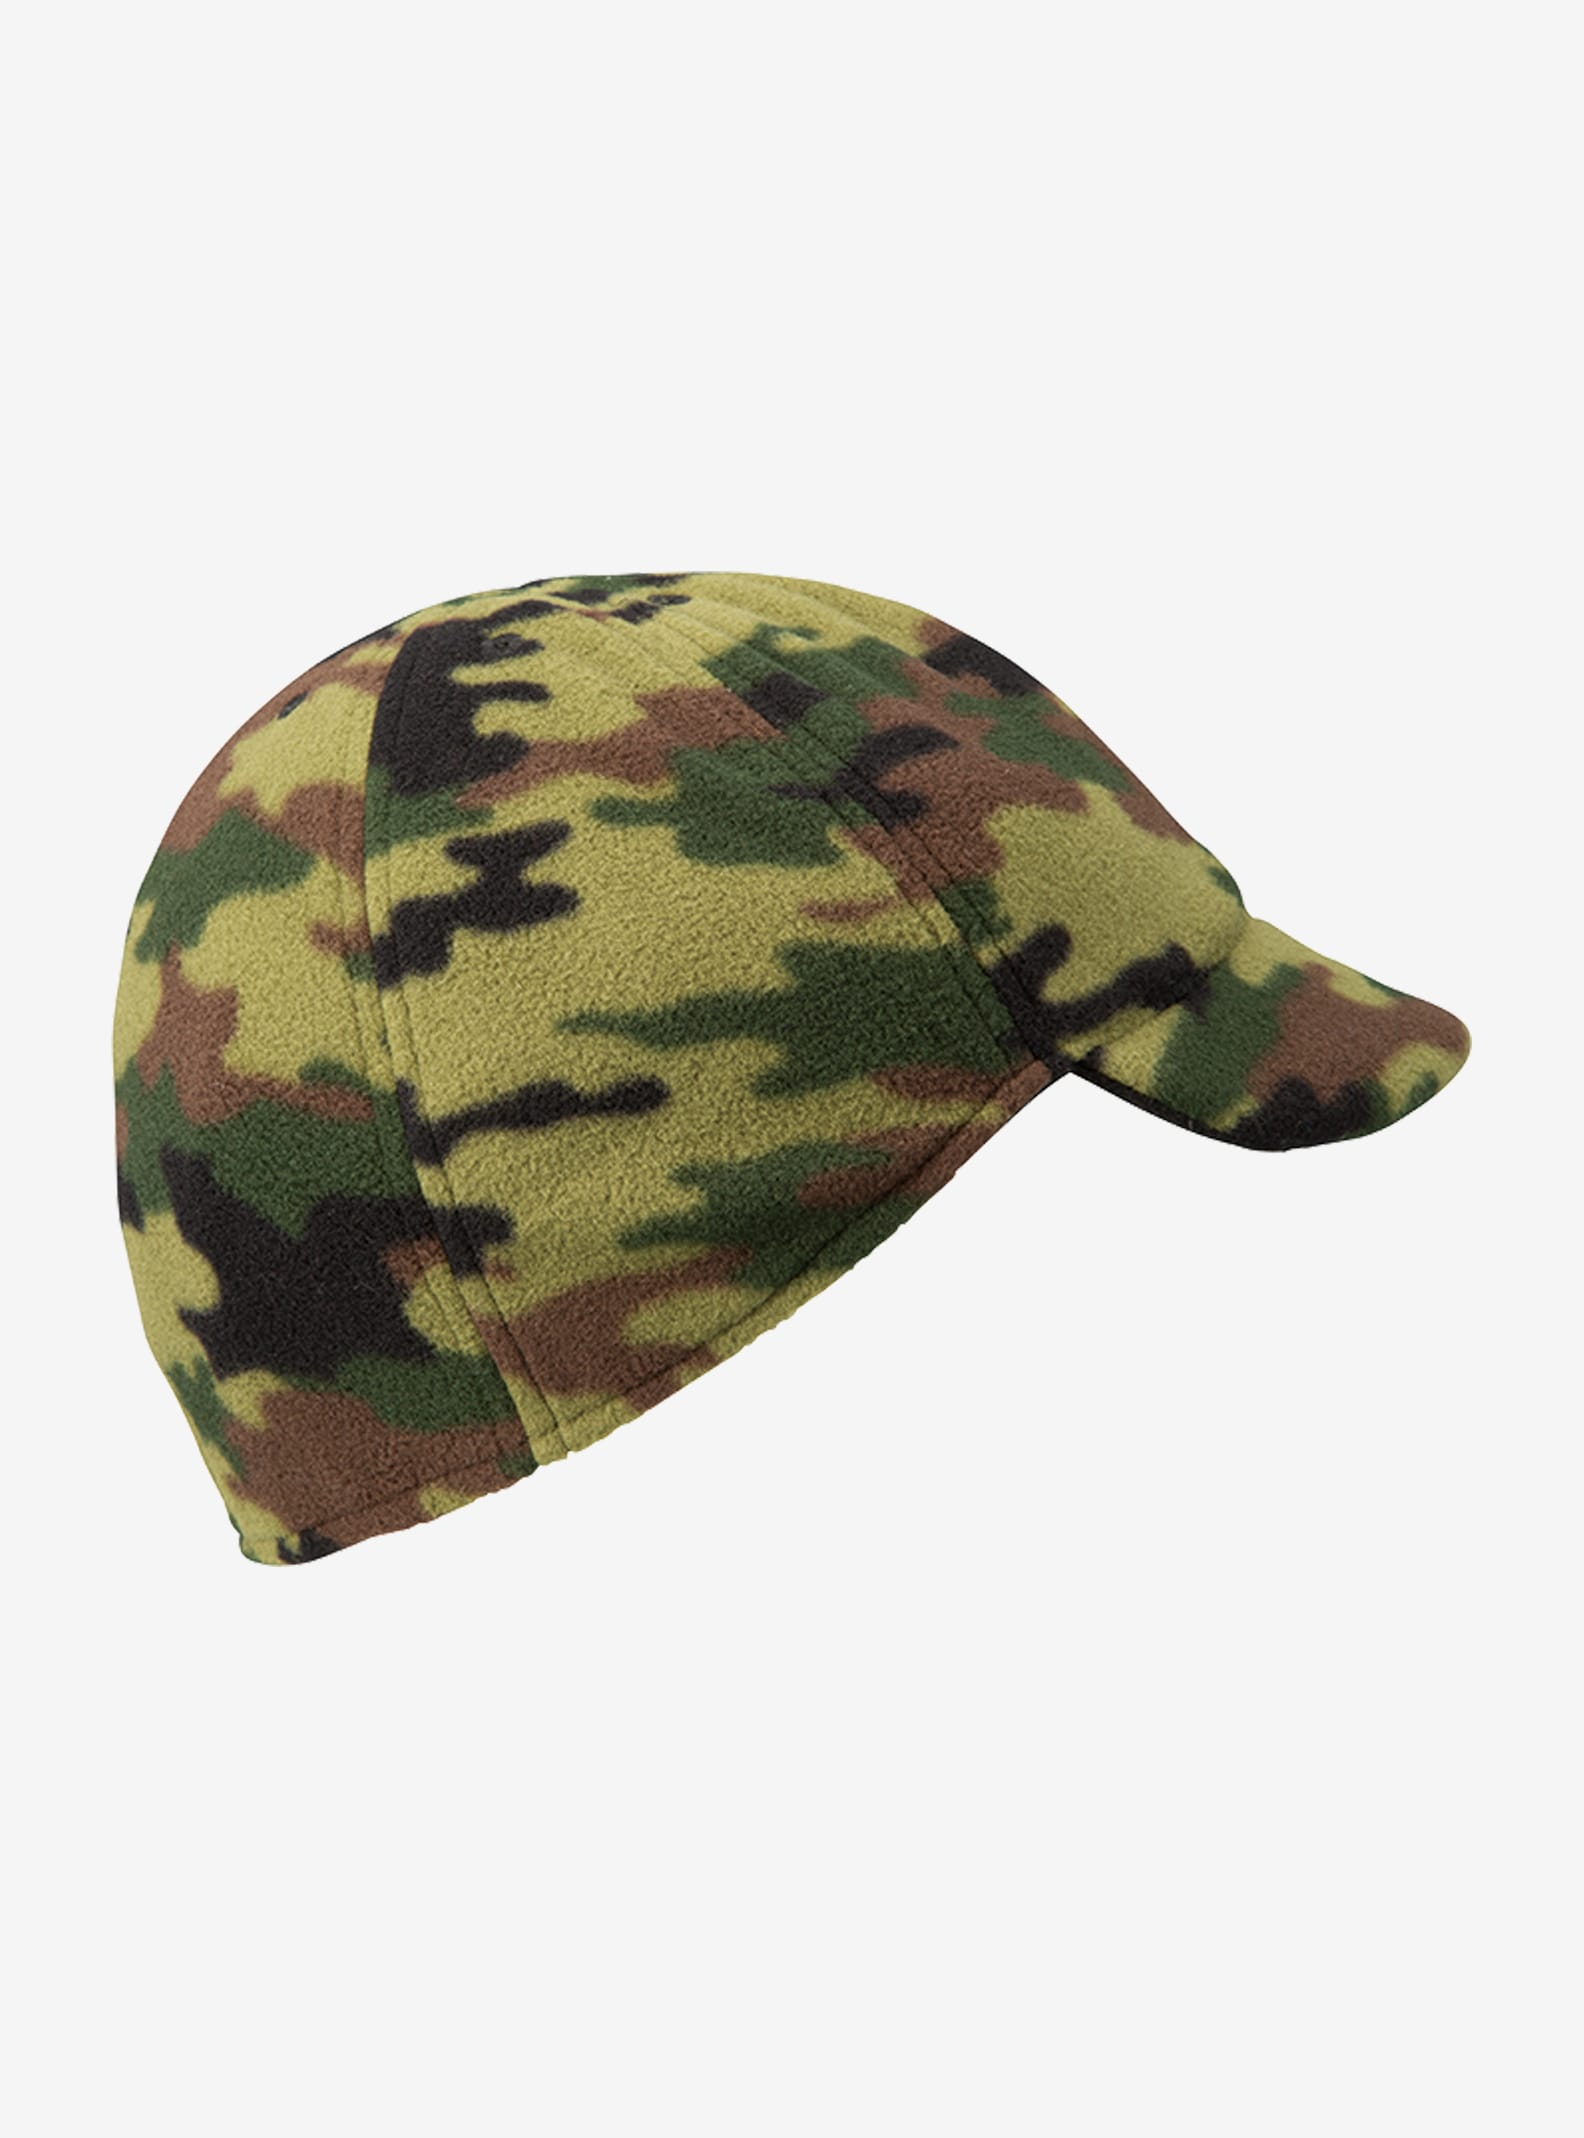 Burton Player Fleece Cap shown in Camo